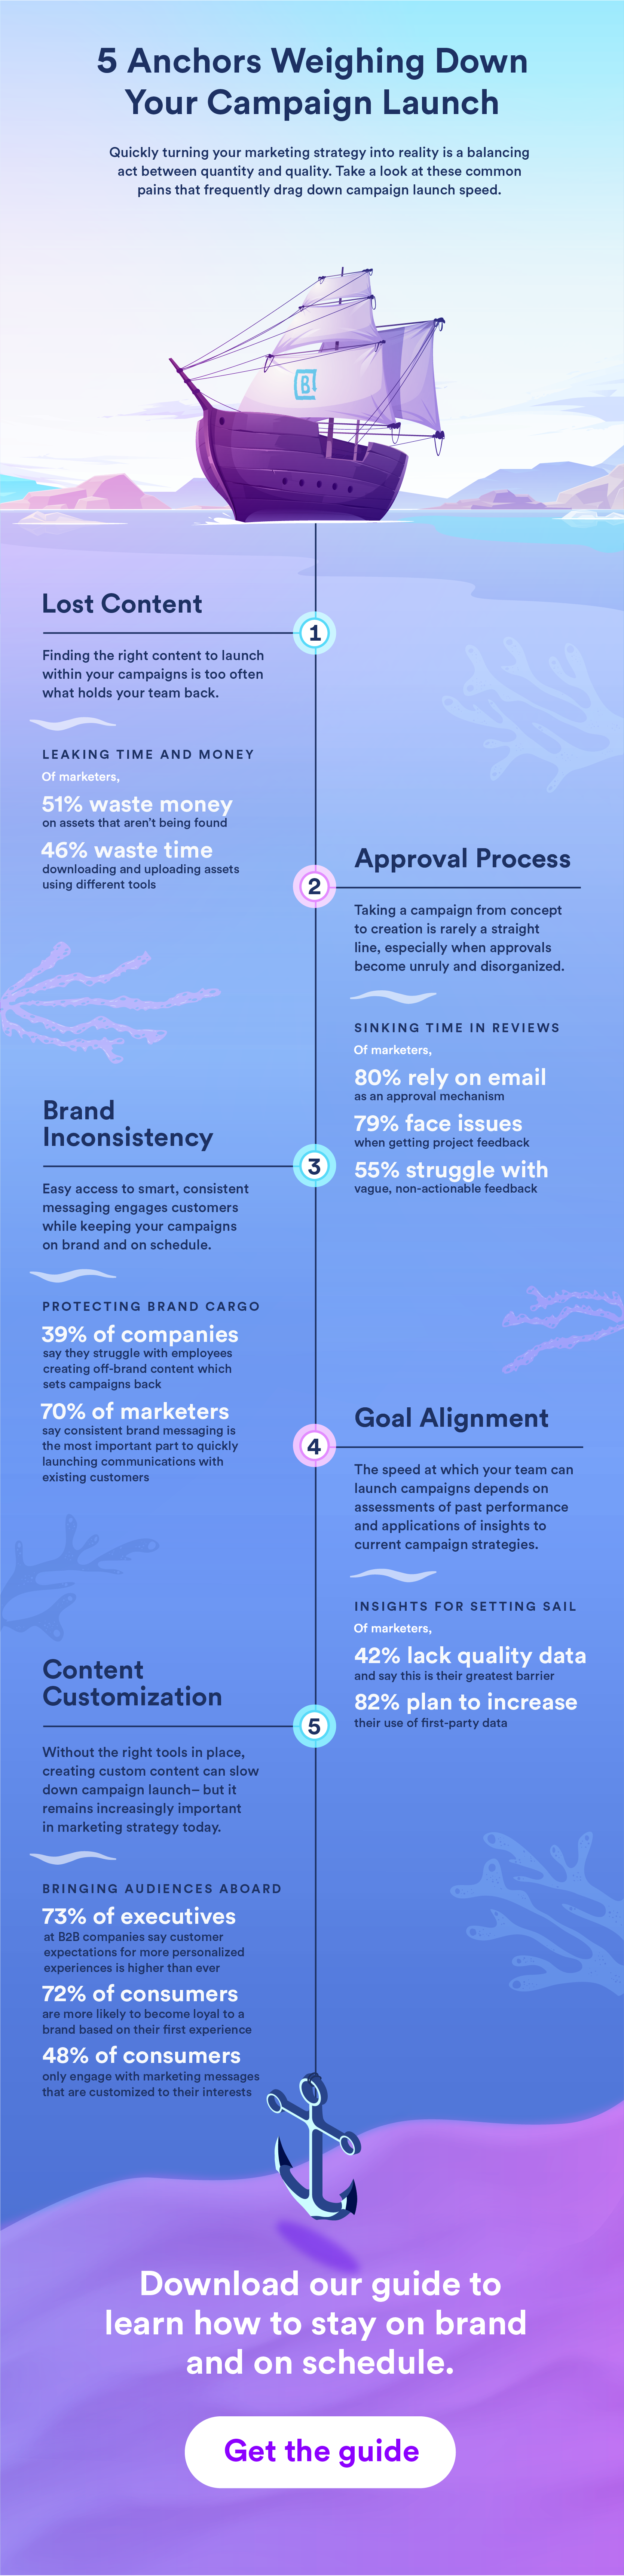 Infographic on common anchors that weigh down marketing campaign speed to market